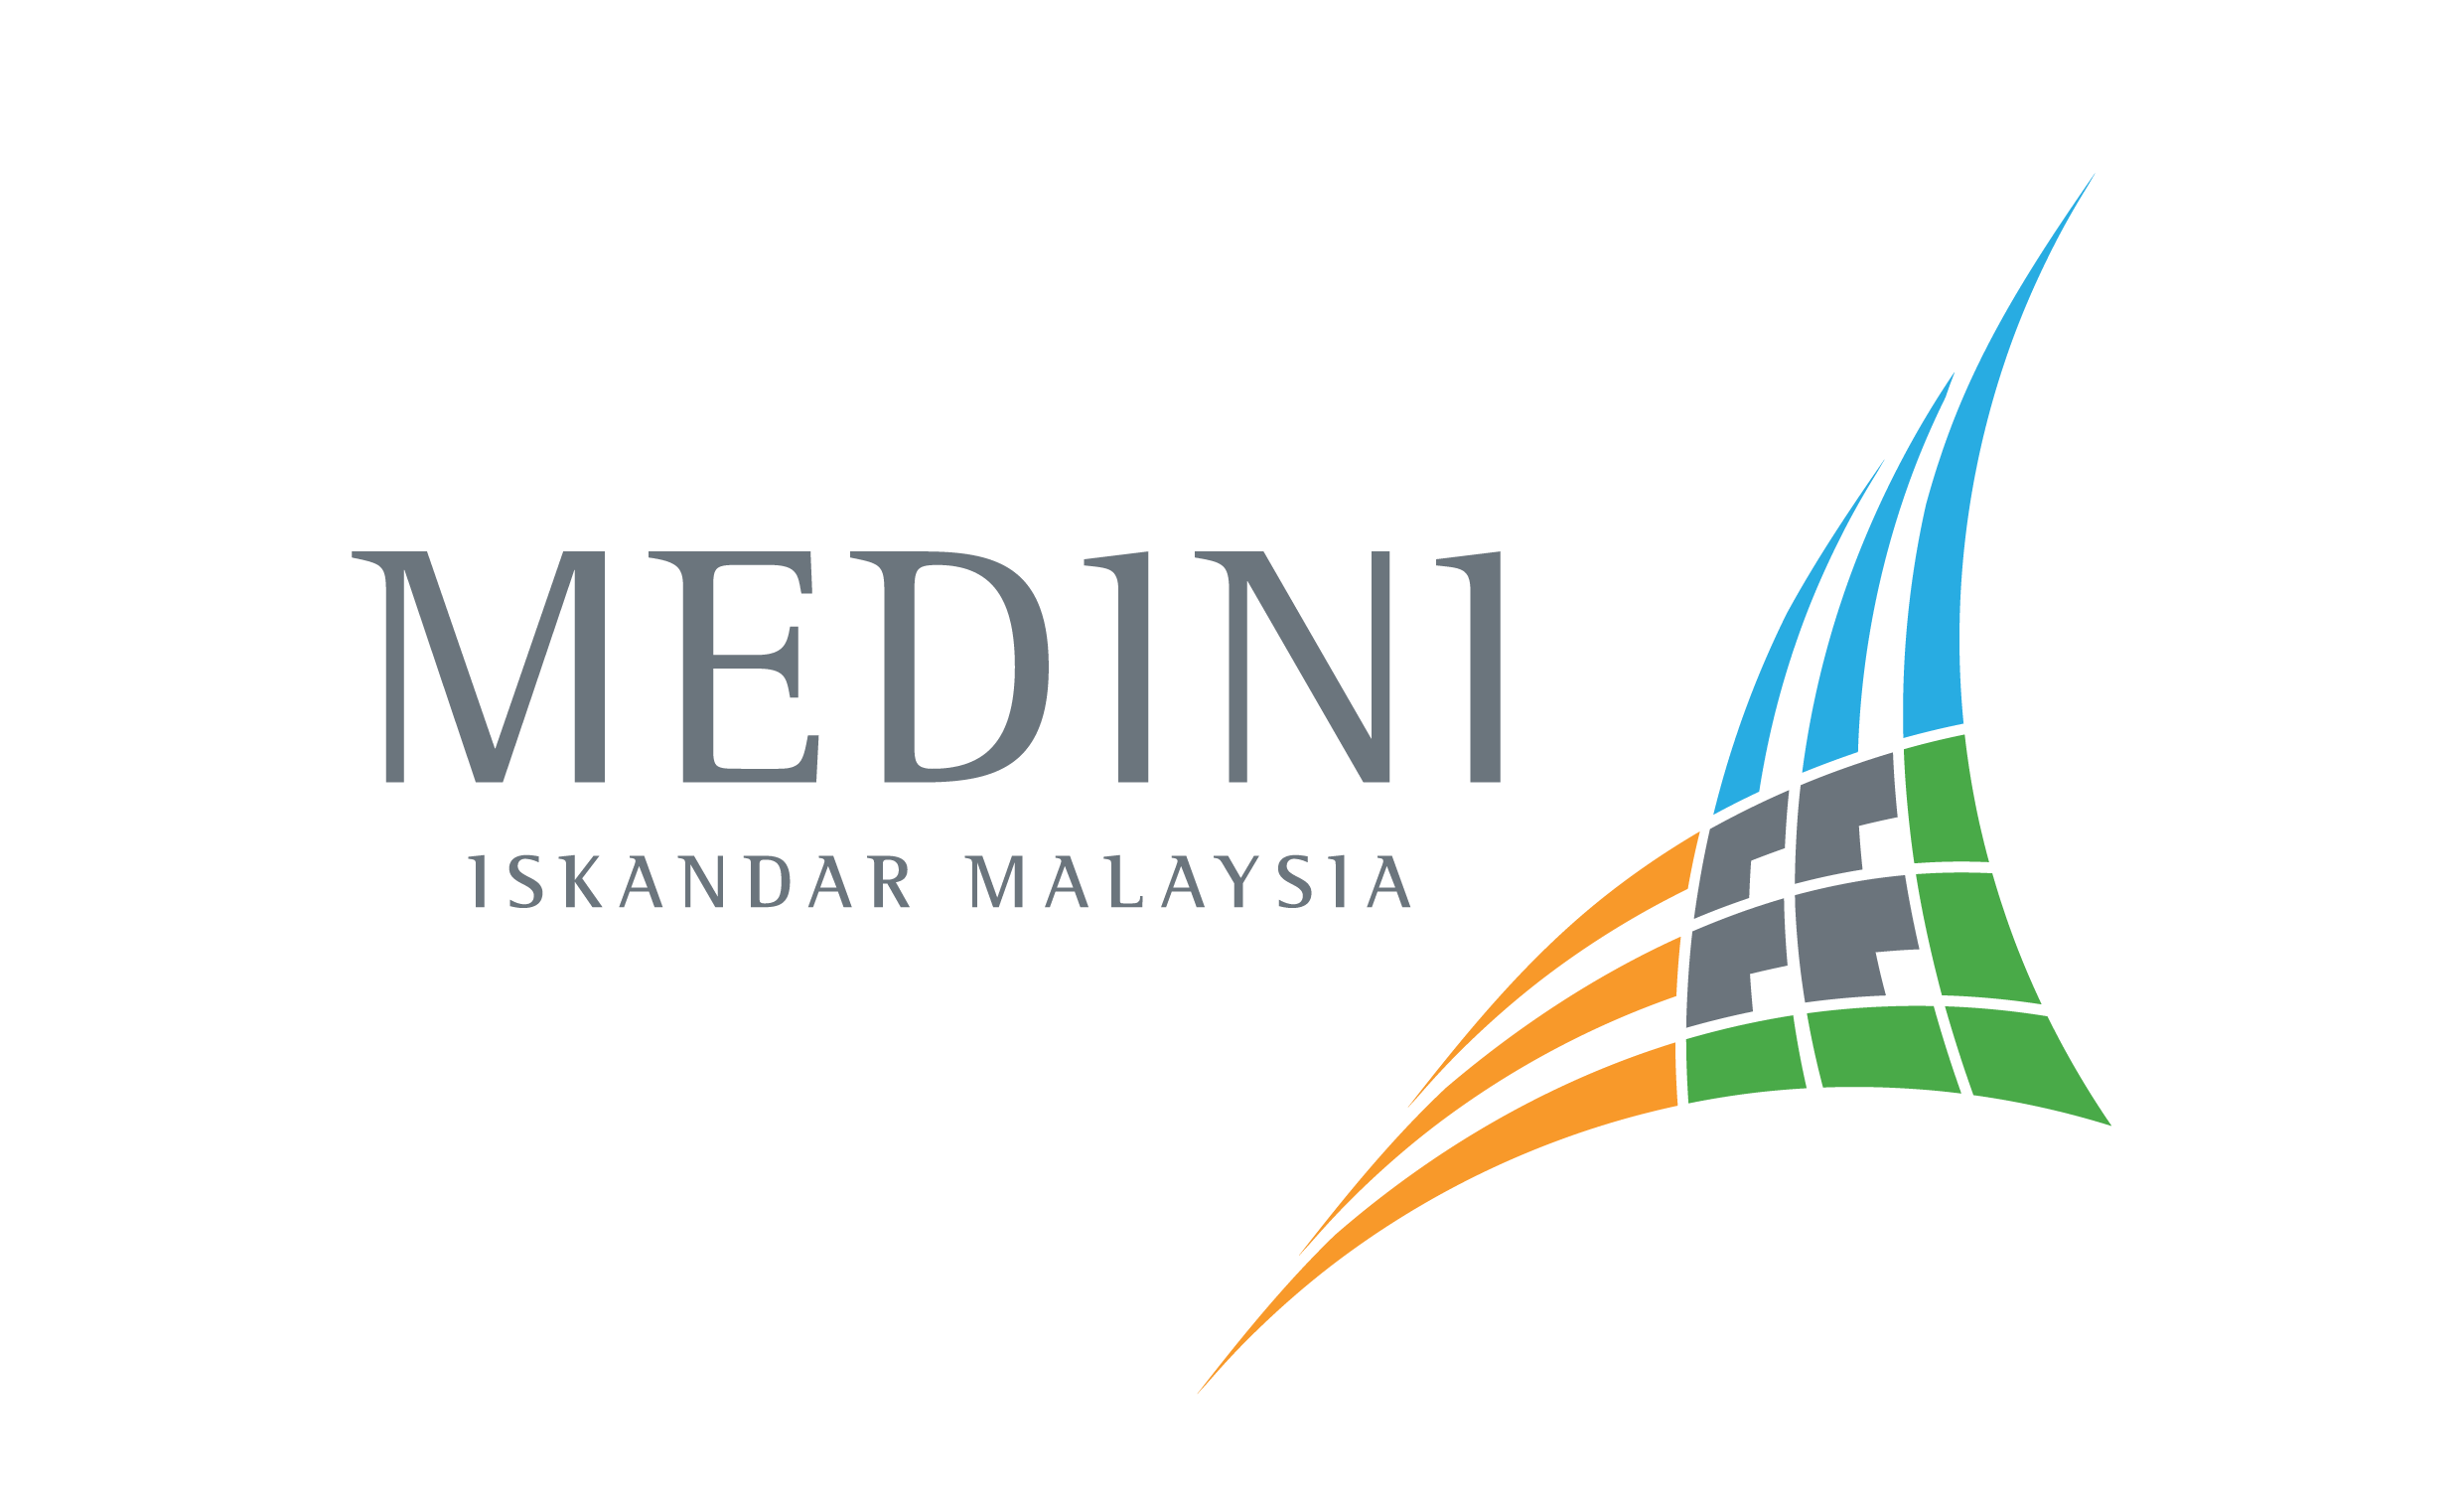 The Medini logo was designed in 2008 by Y&R Malaysia. We had to incorporate the logo into our signs.